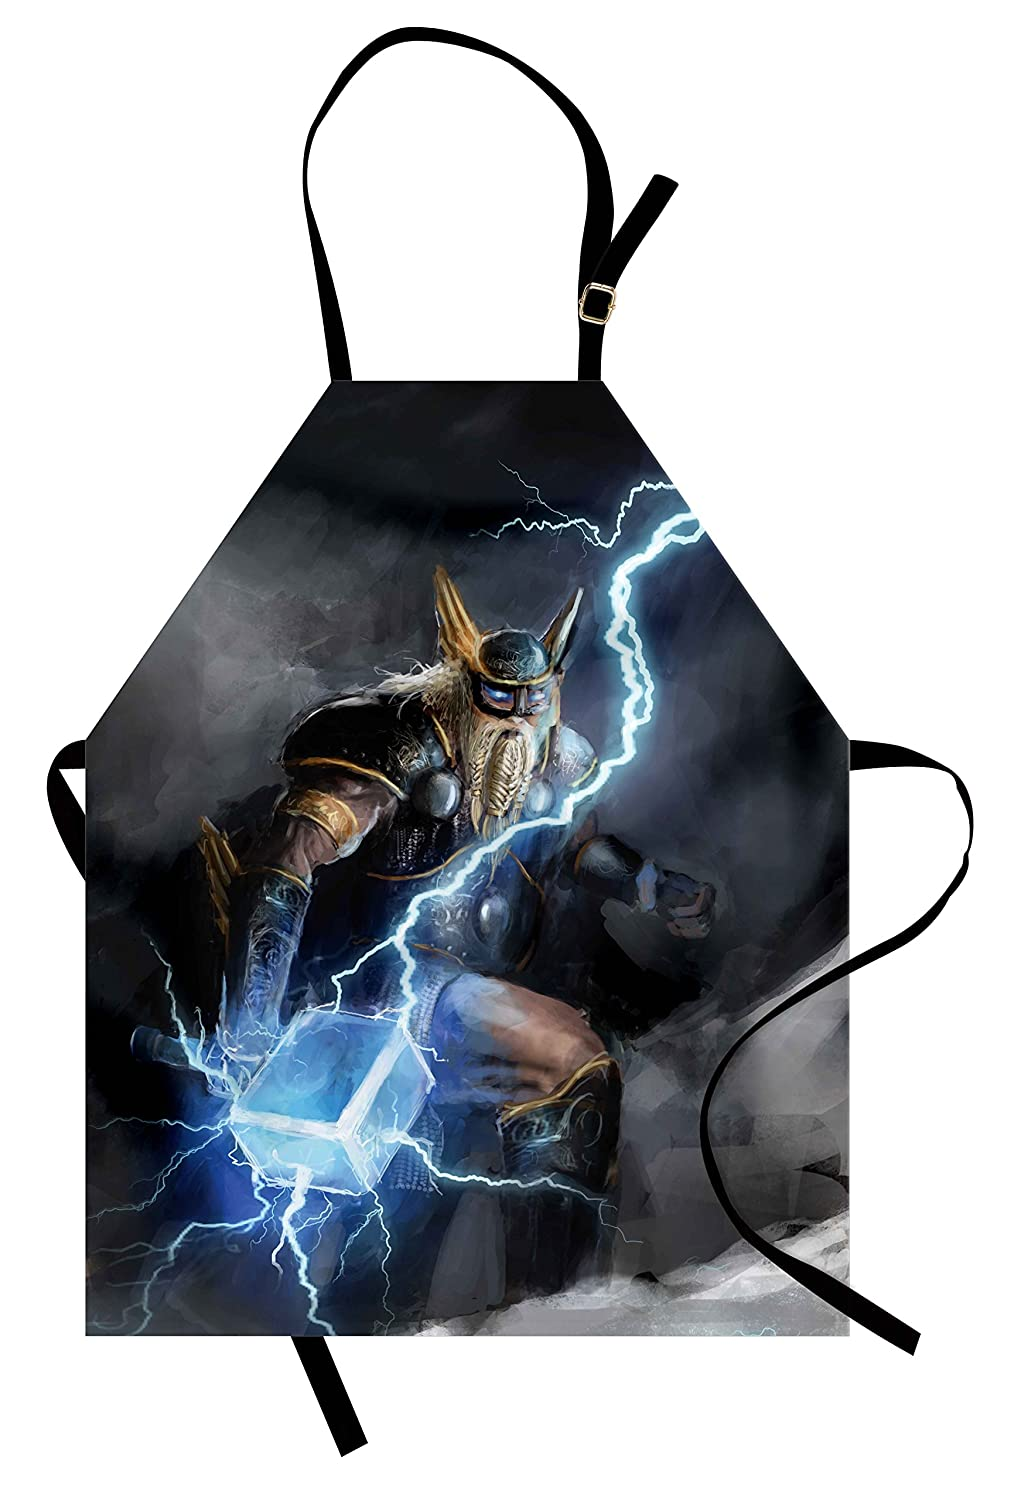 Vikingエプロンby lunarable、Mjolnir with Thor Climbing on a mountain to Fight Bringer of the Thunderstorm、ユニセックスキッチン調節可能なネックよだれかけエプロンfor Cooking Bakingガーデニング、ゴールドブルーグレー   B07952Q2RX